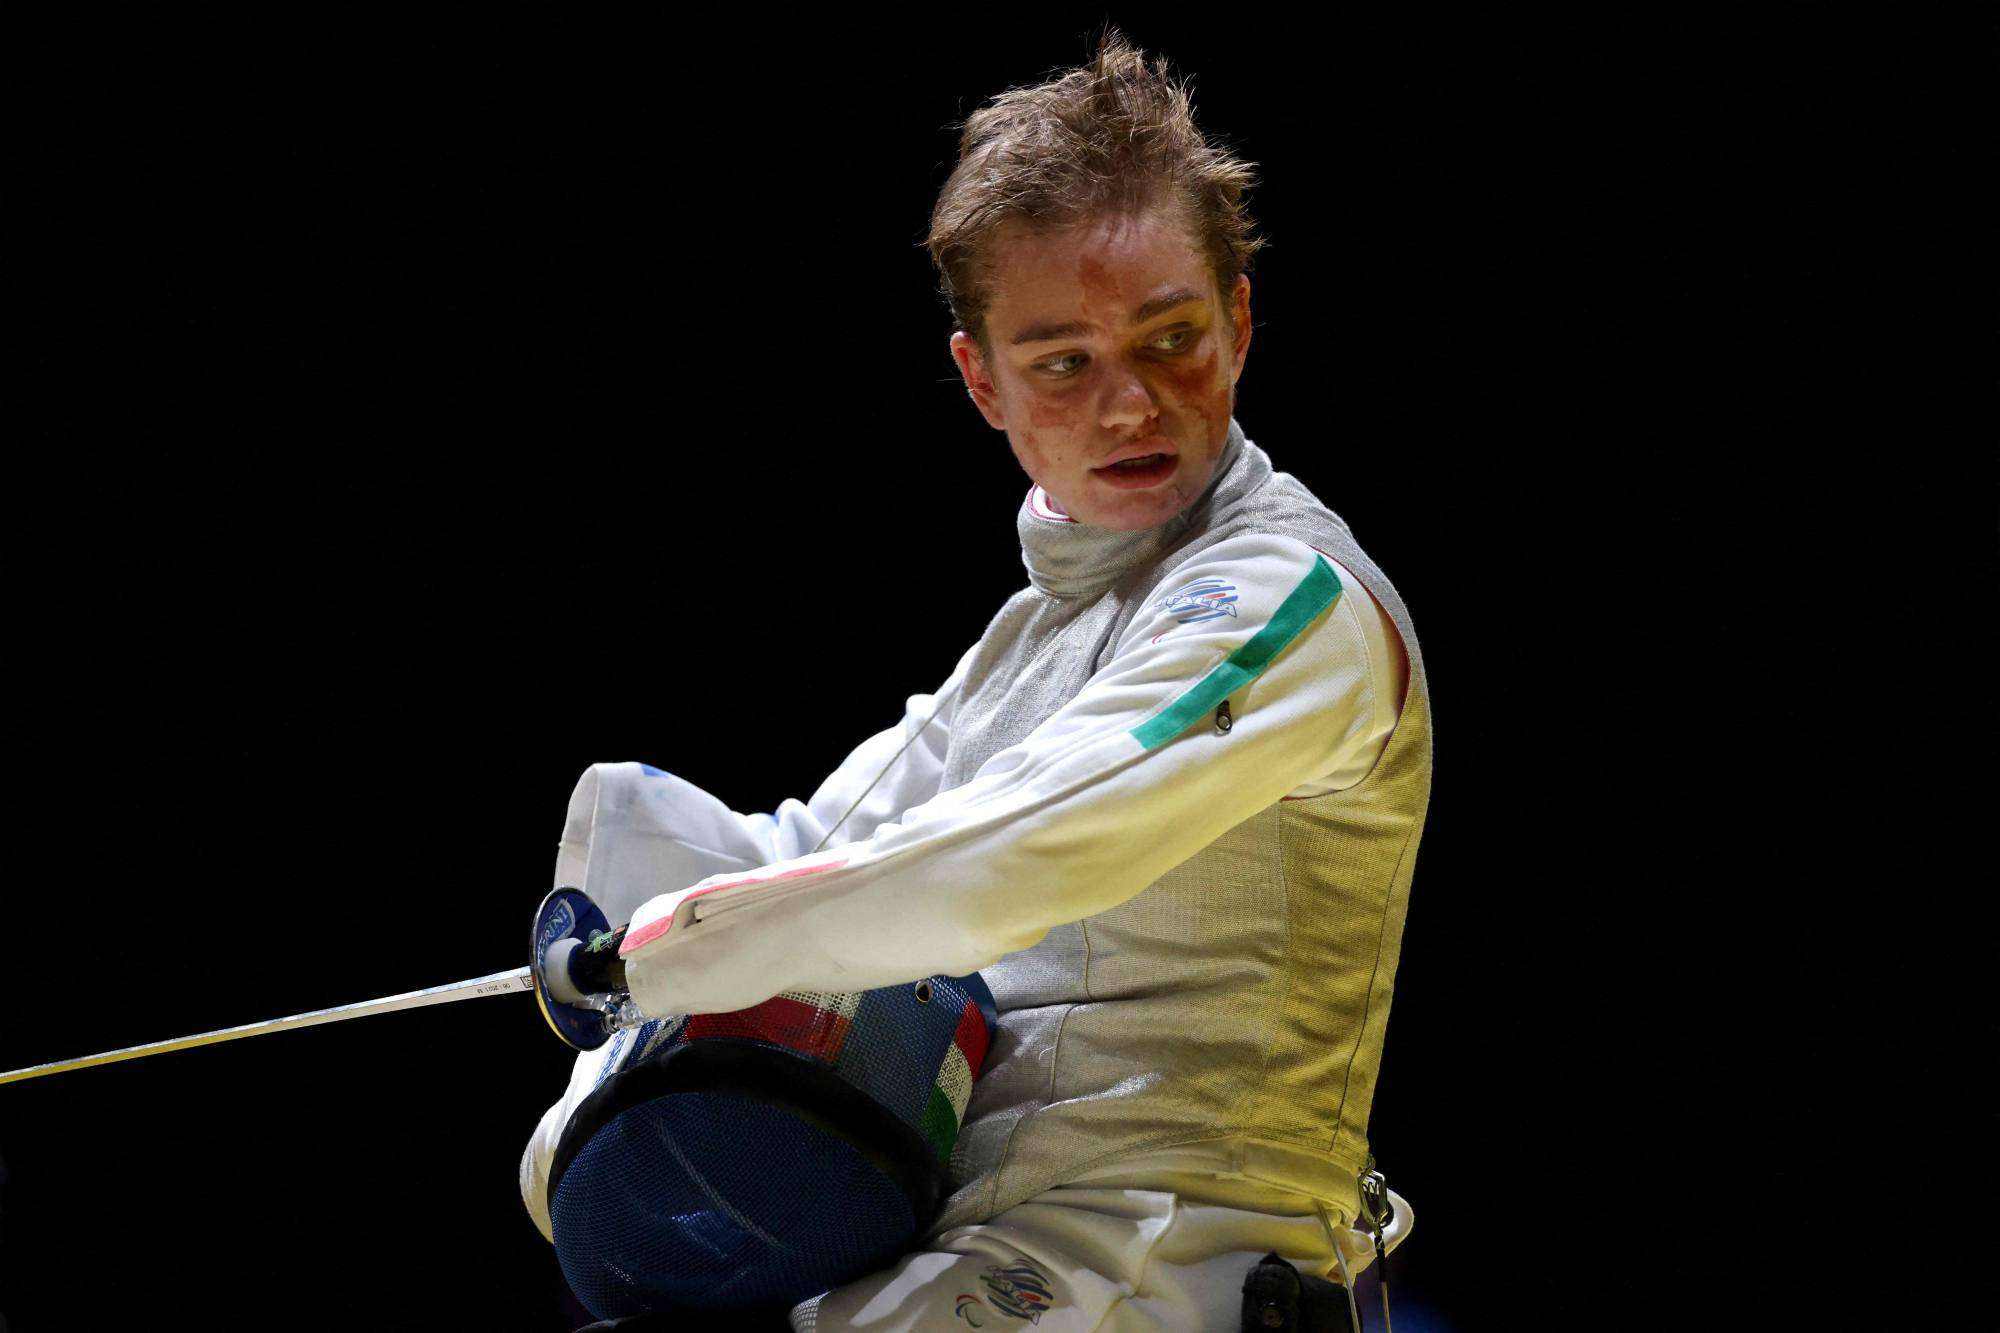 Italy's Beatrice Vio breezed through the preliminary rounds Saturday at Makuhari Messe before defeating China's Jingjing Zhou 15-9 in the final match of women's foil category B. | AFP-JIJI